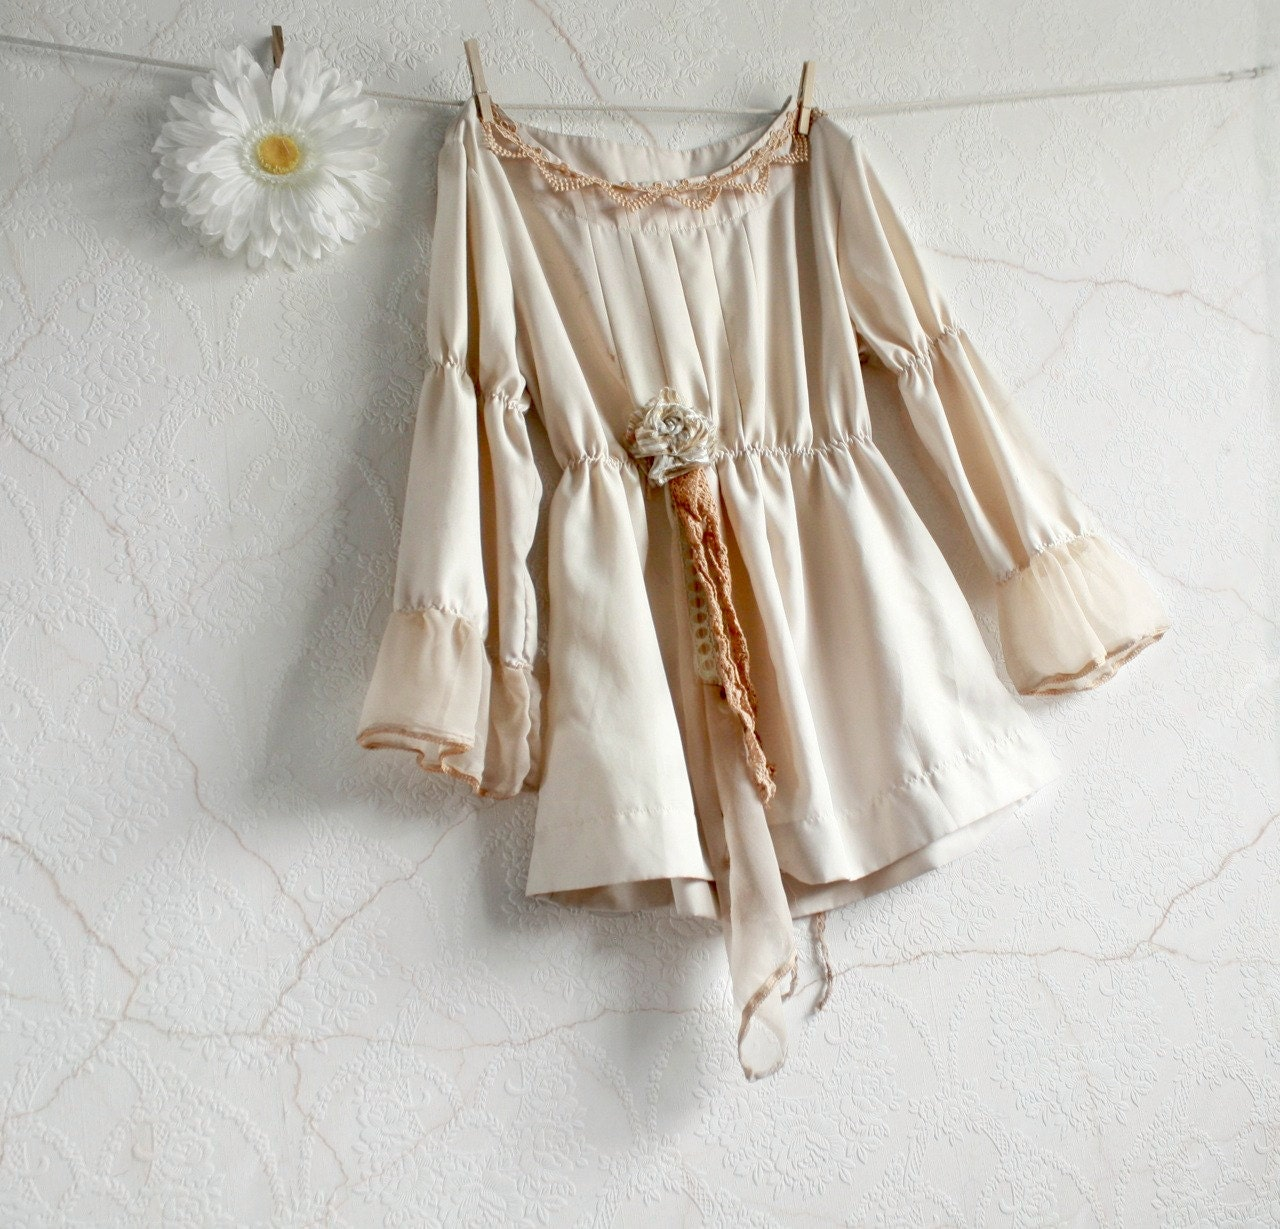 Cream Blouse Shabby Chic Clothing Women 39 S Shirt Eco